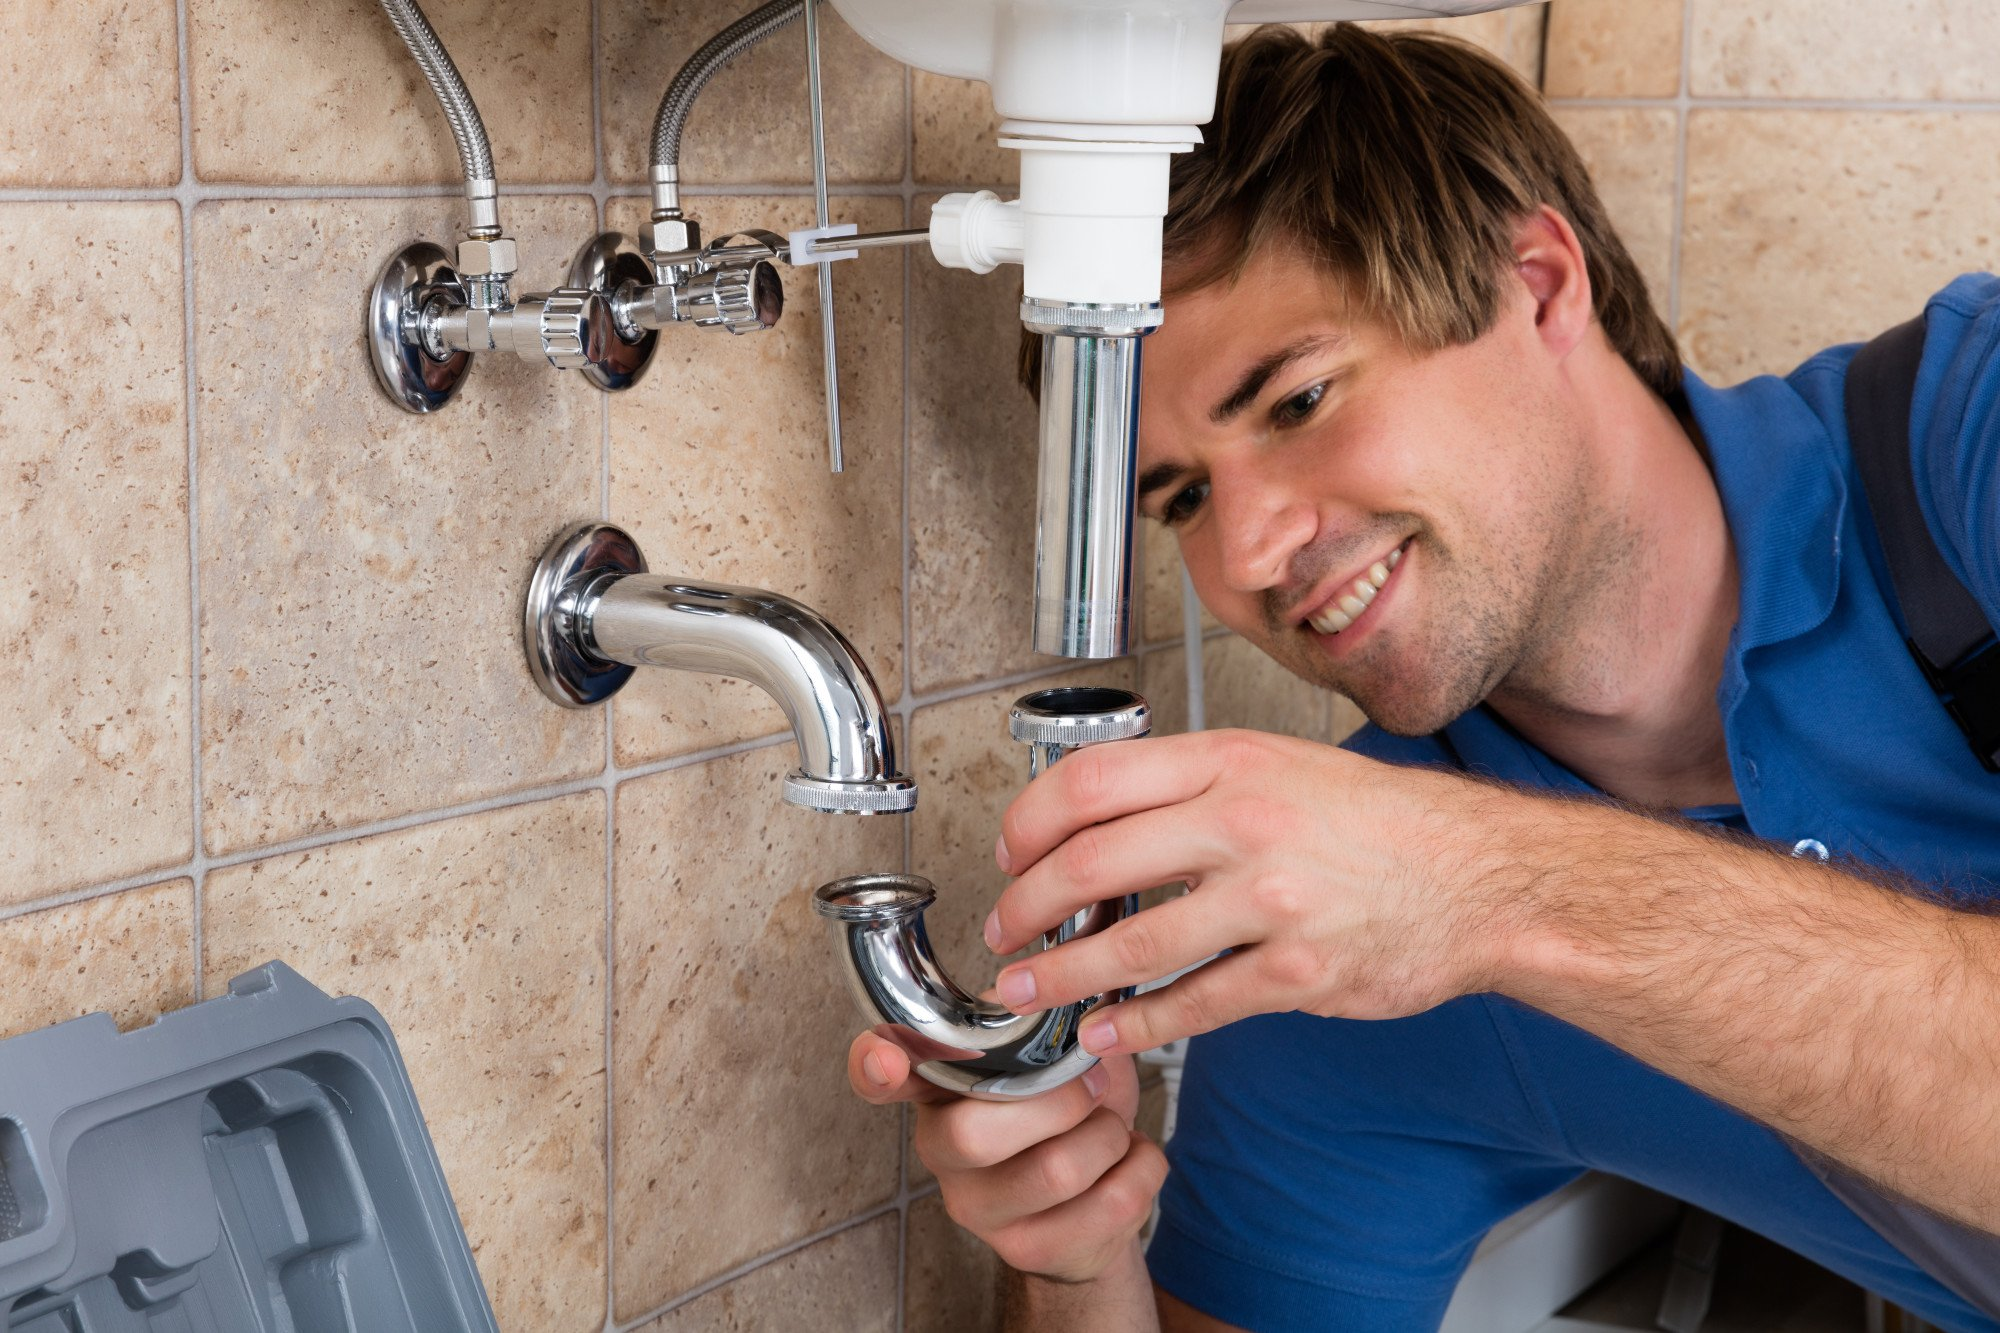 DIY Plumbing Don't For Your Business